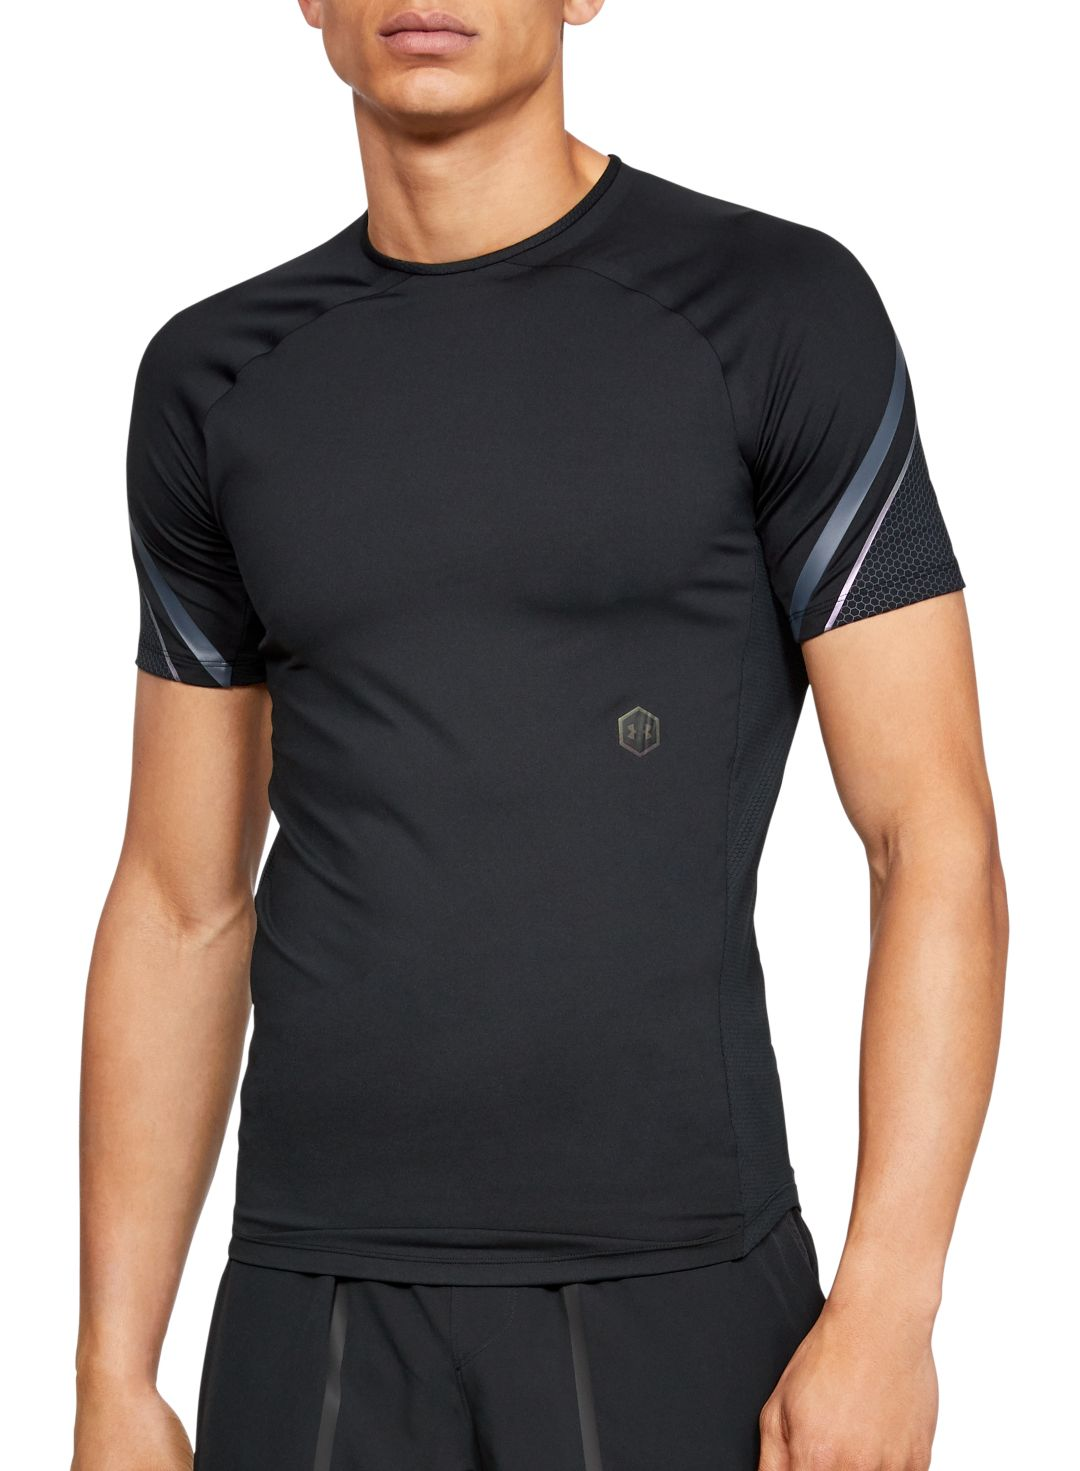 6abcb3c8f7 Under Armour Men's RUSH Compression Graphic Short Sleeve Shirt